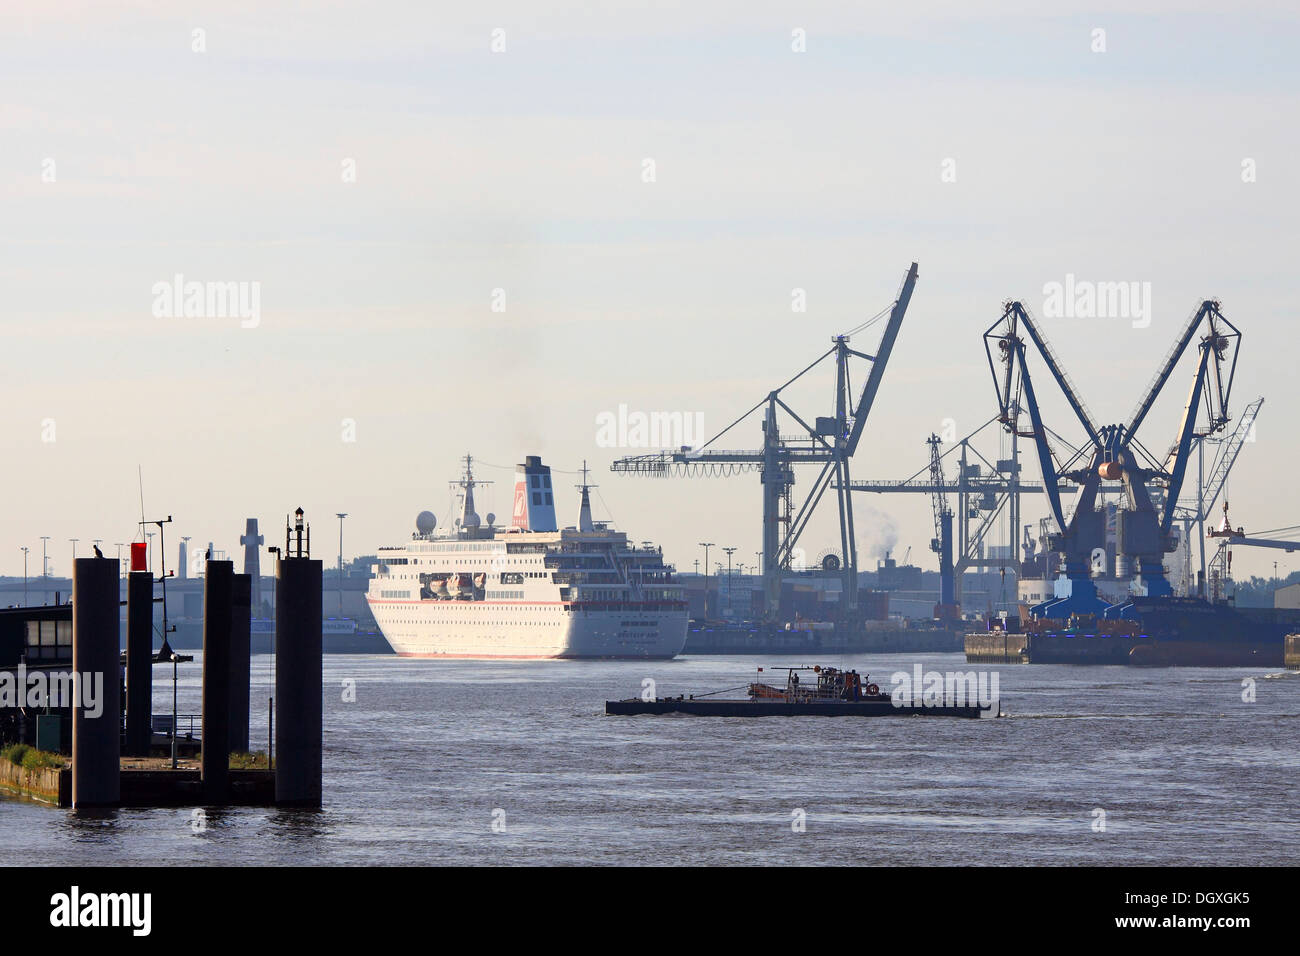 Cruise ship entering the Port of Hamburg, Cruise Days, 17.08.-19.08.2012, cranes in the harbor, Hanseatic City of Stock Photo